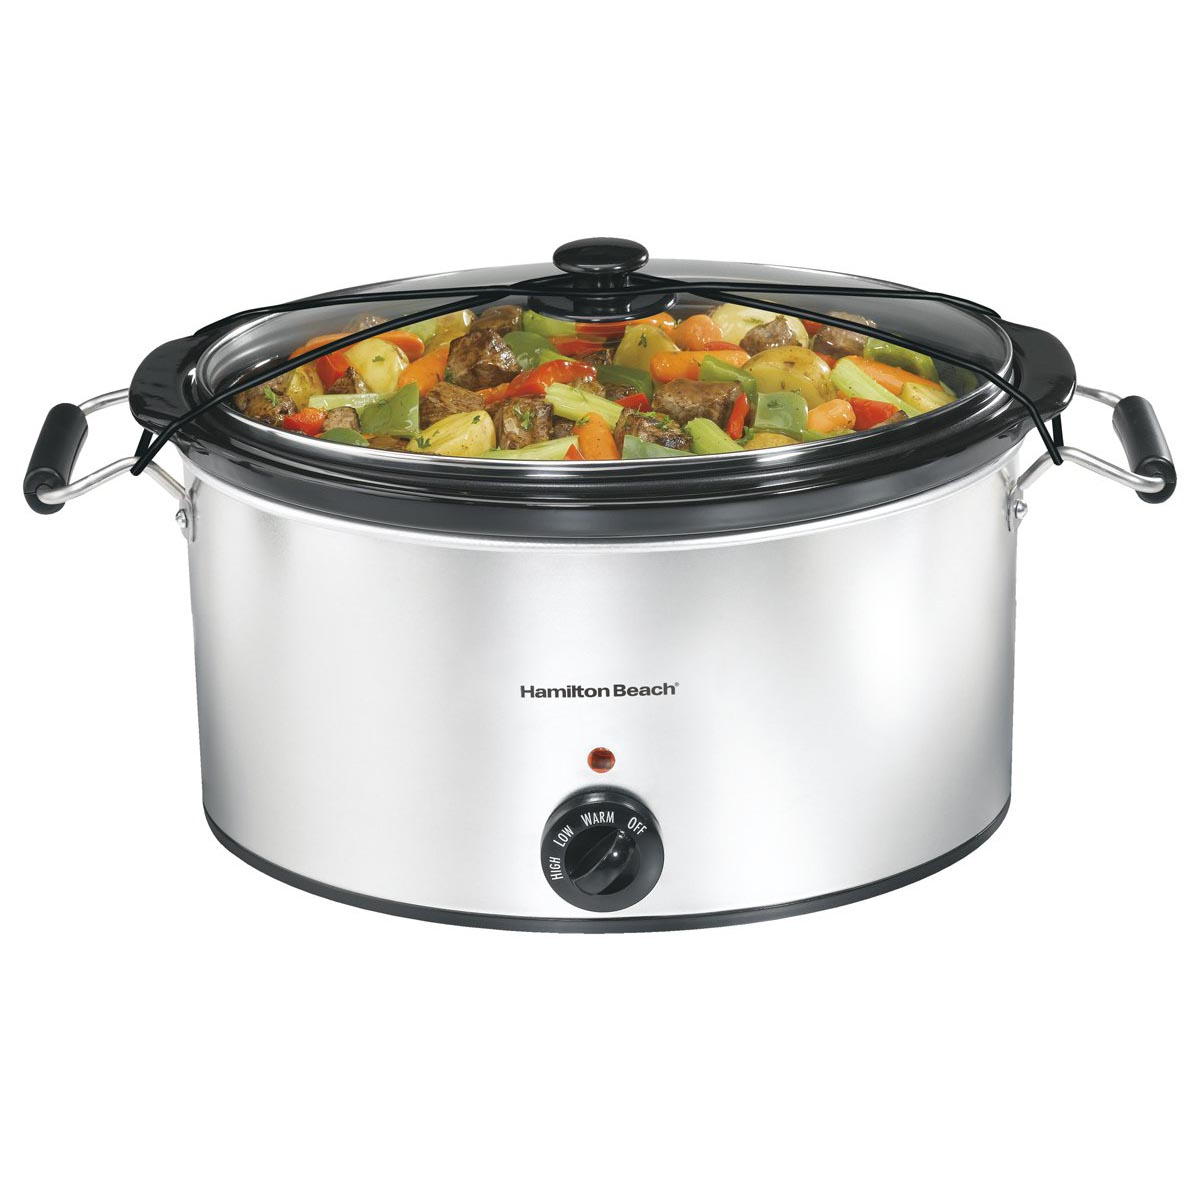 Hamilton Beach 7 Quart Classic Counter top Oval Slow Cooker with Lid Latch